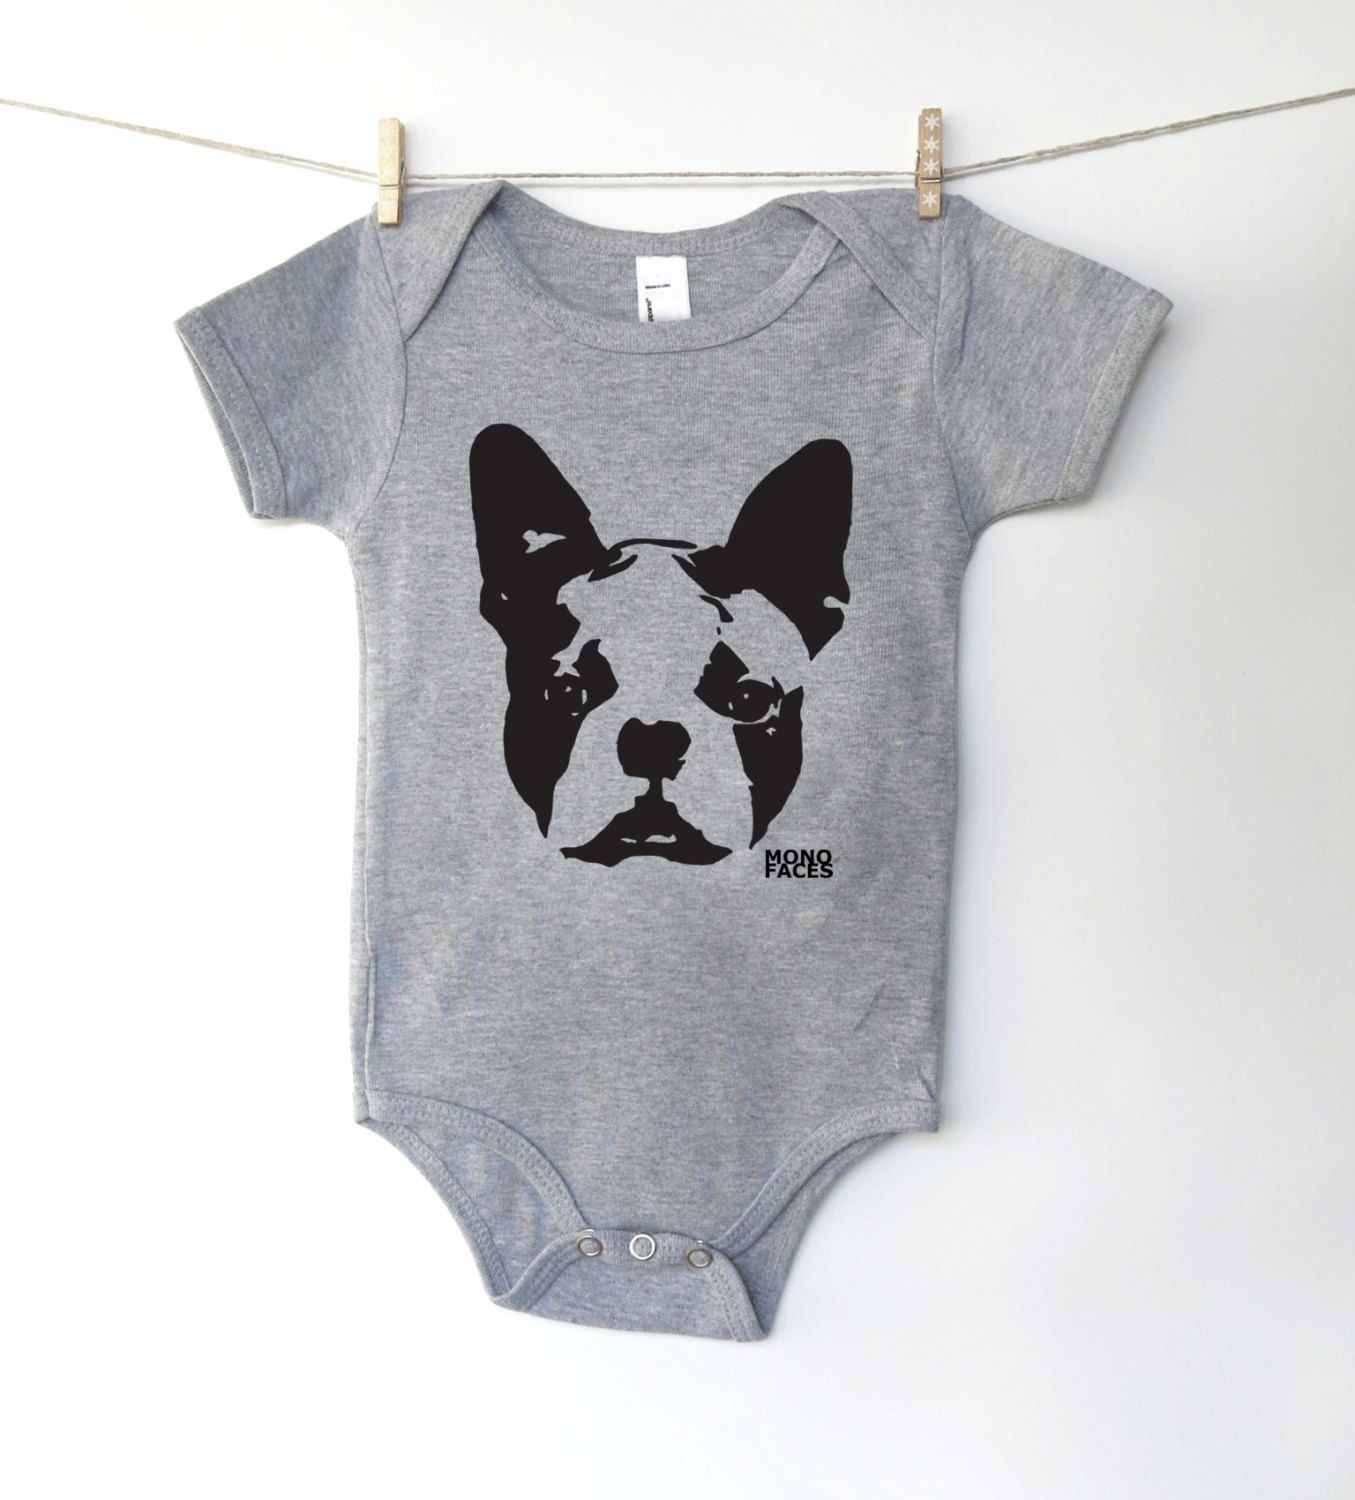 Greyhound baby one piece greyhound gifts gender neutral baby boston terrier baby onesie hipster baby boy girl by monofaces negle Images